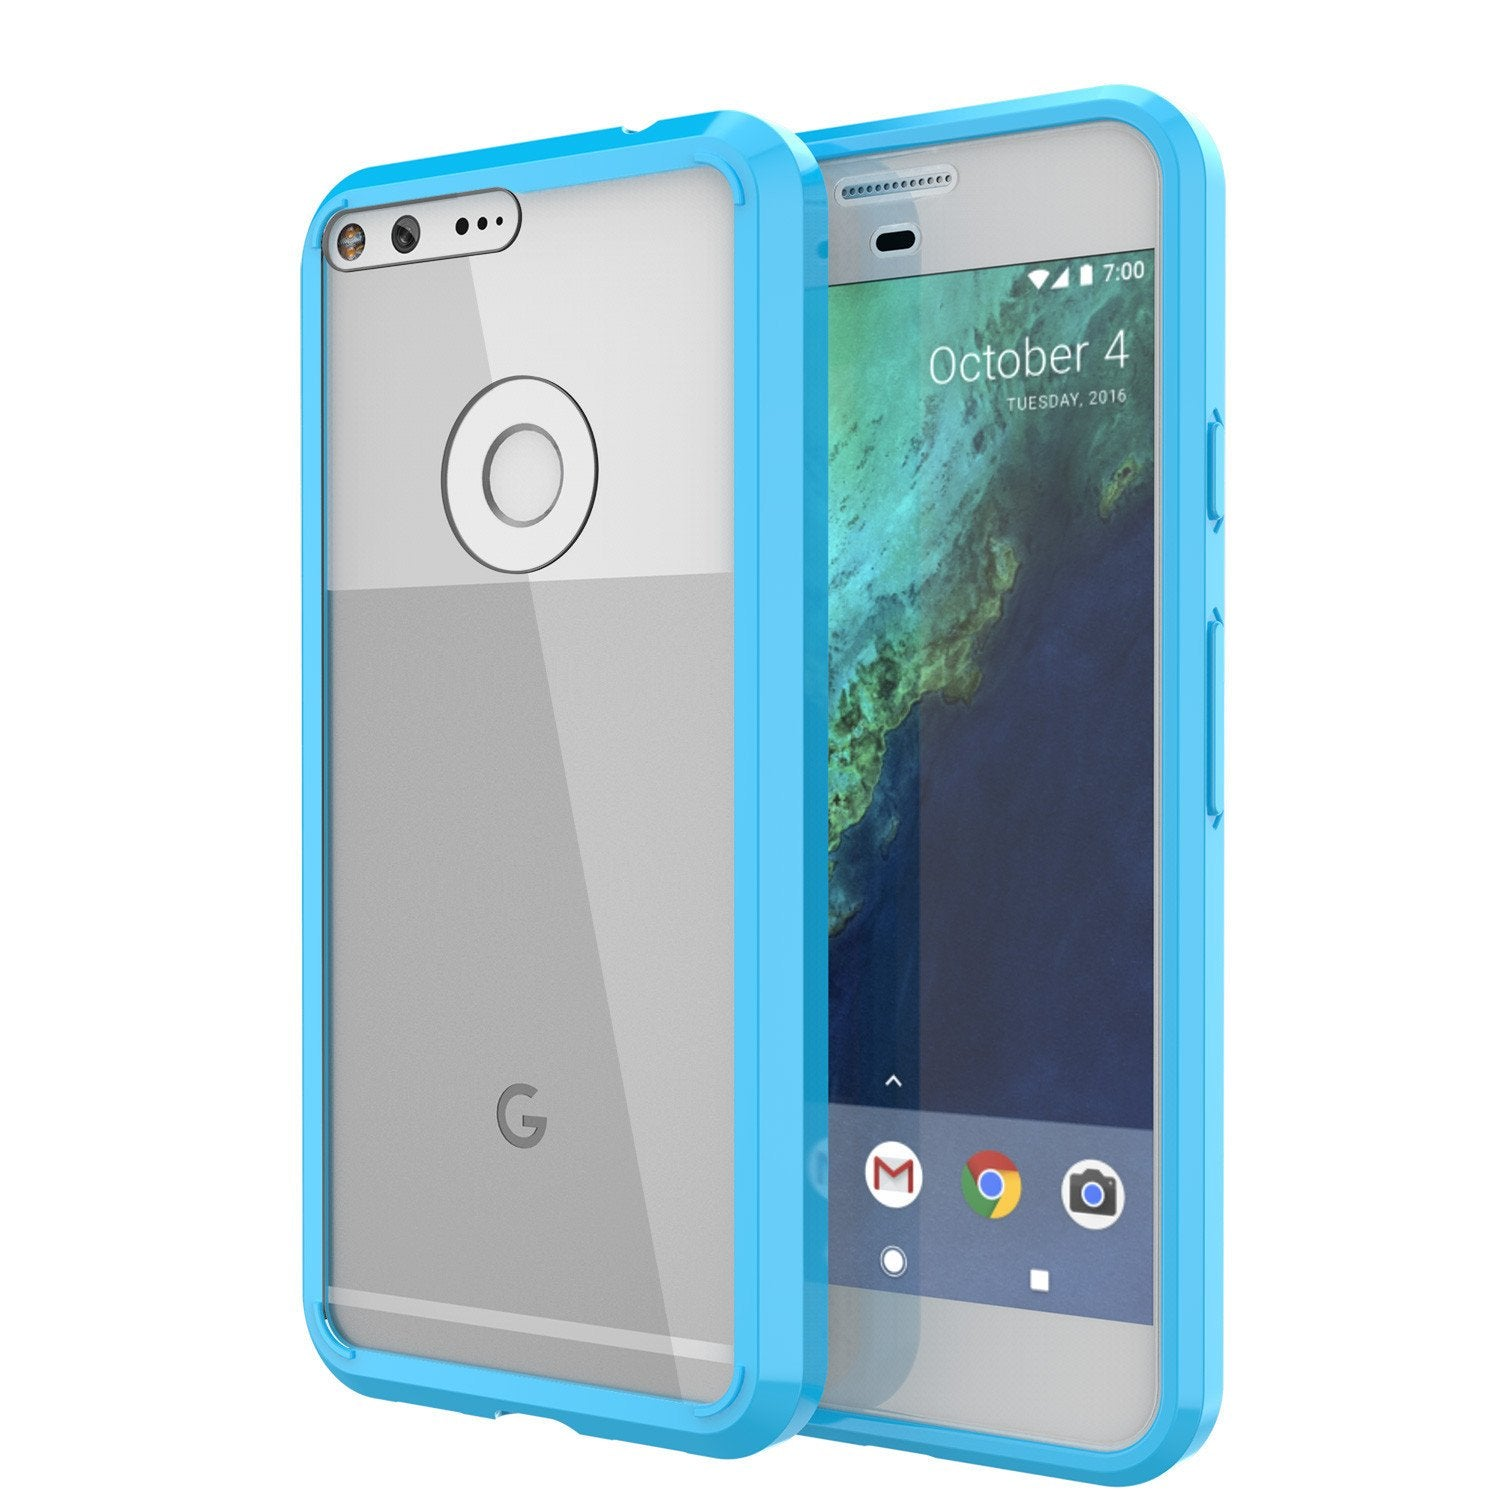 Google Pixel XL Case Punkcase® LUCID 2.0 Light Blue Series w/ PUNK SHIELD Glass Screen Protector | Ultra Fit